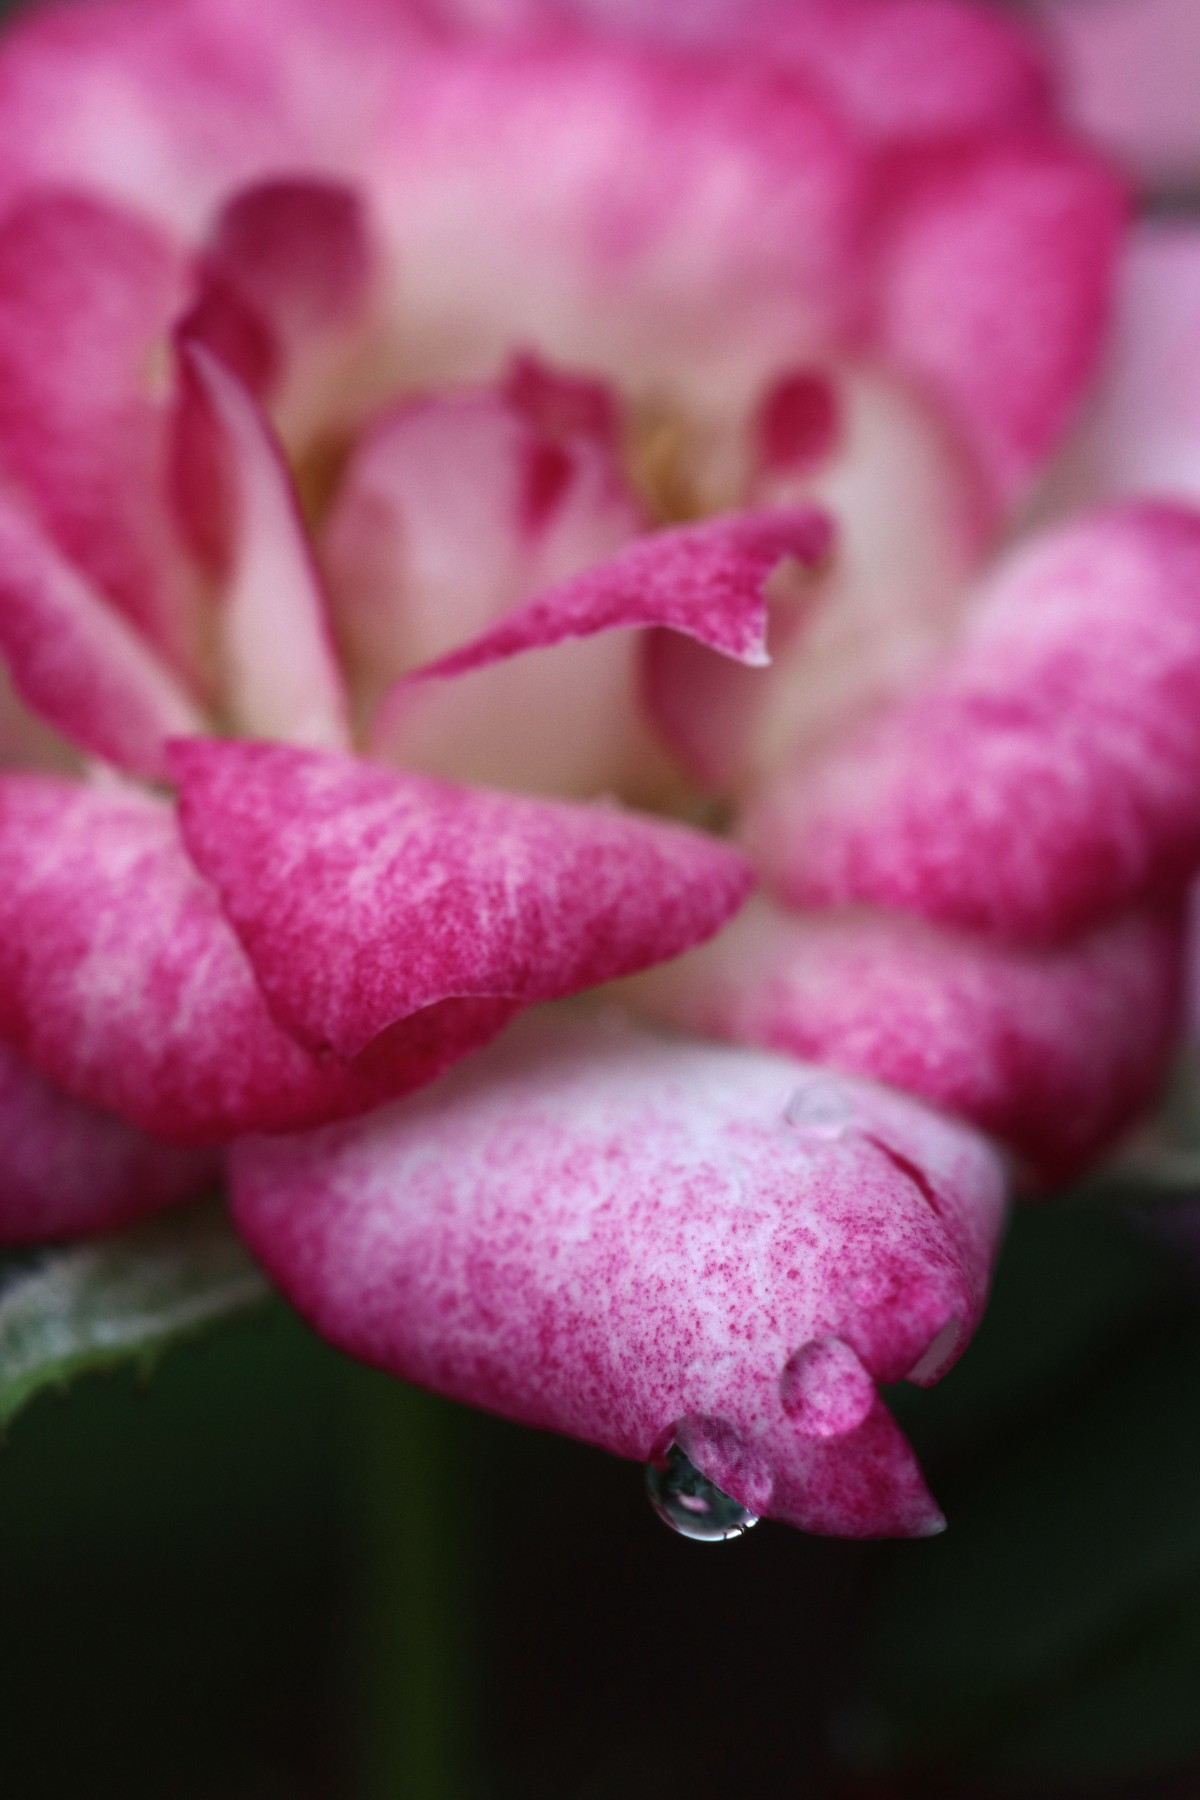 Speckled Rose